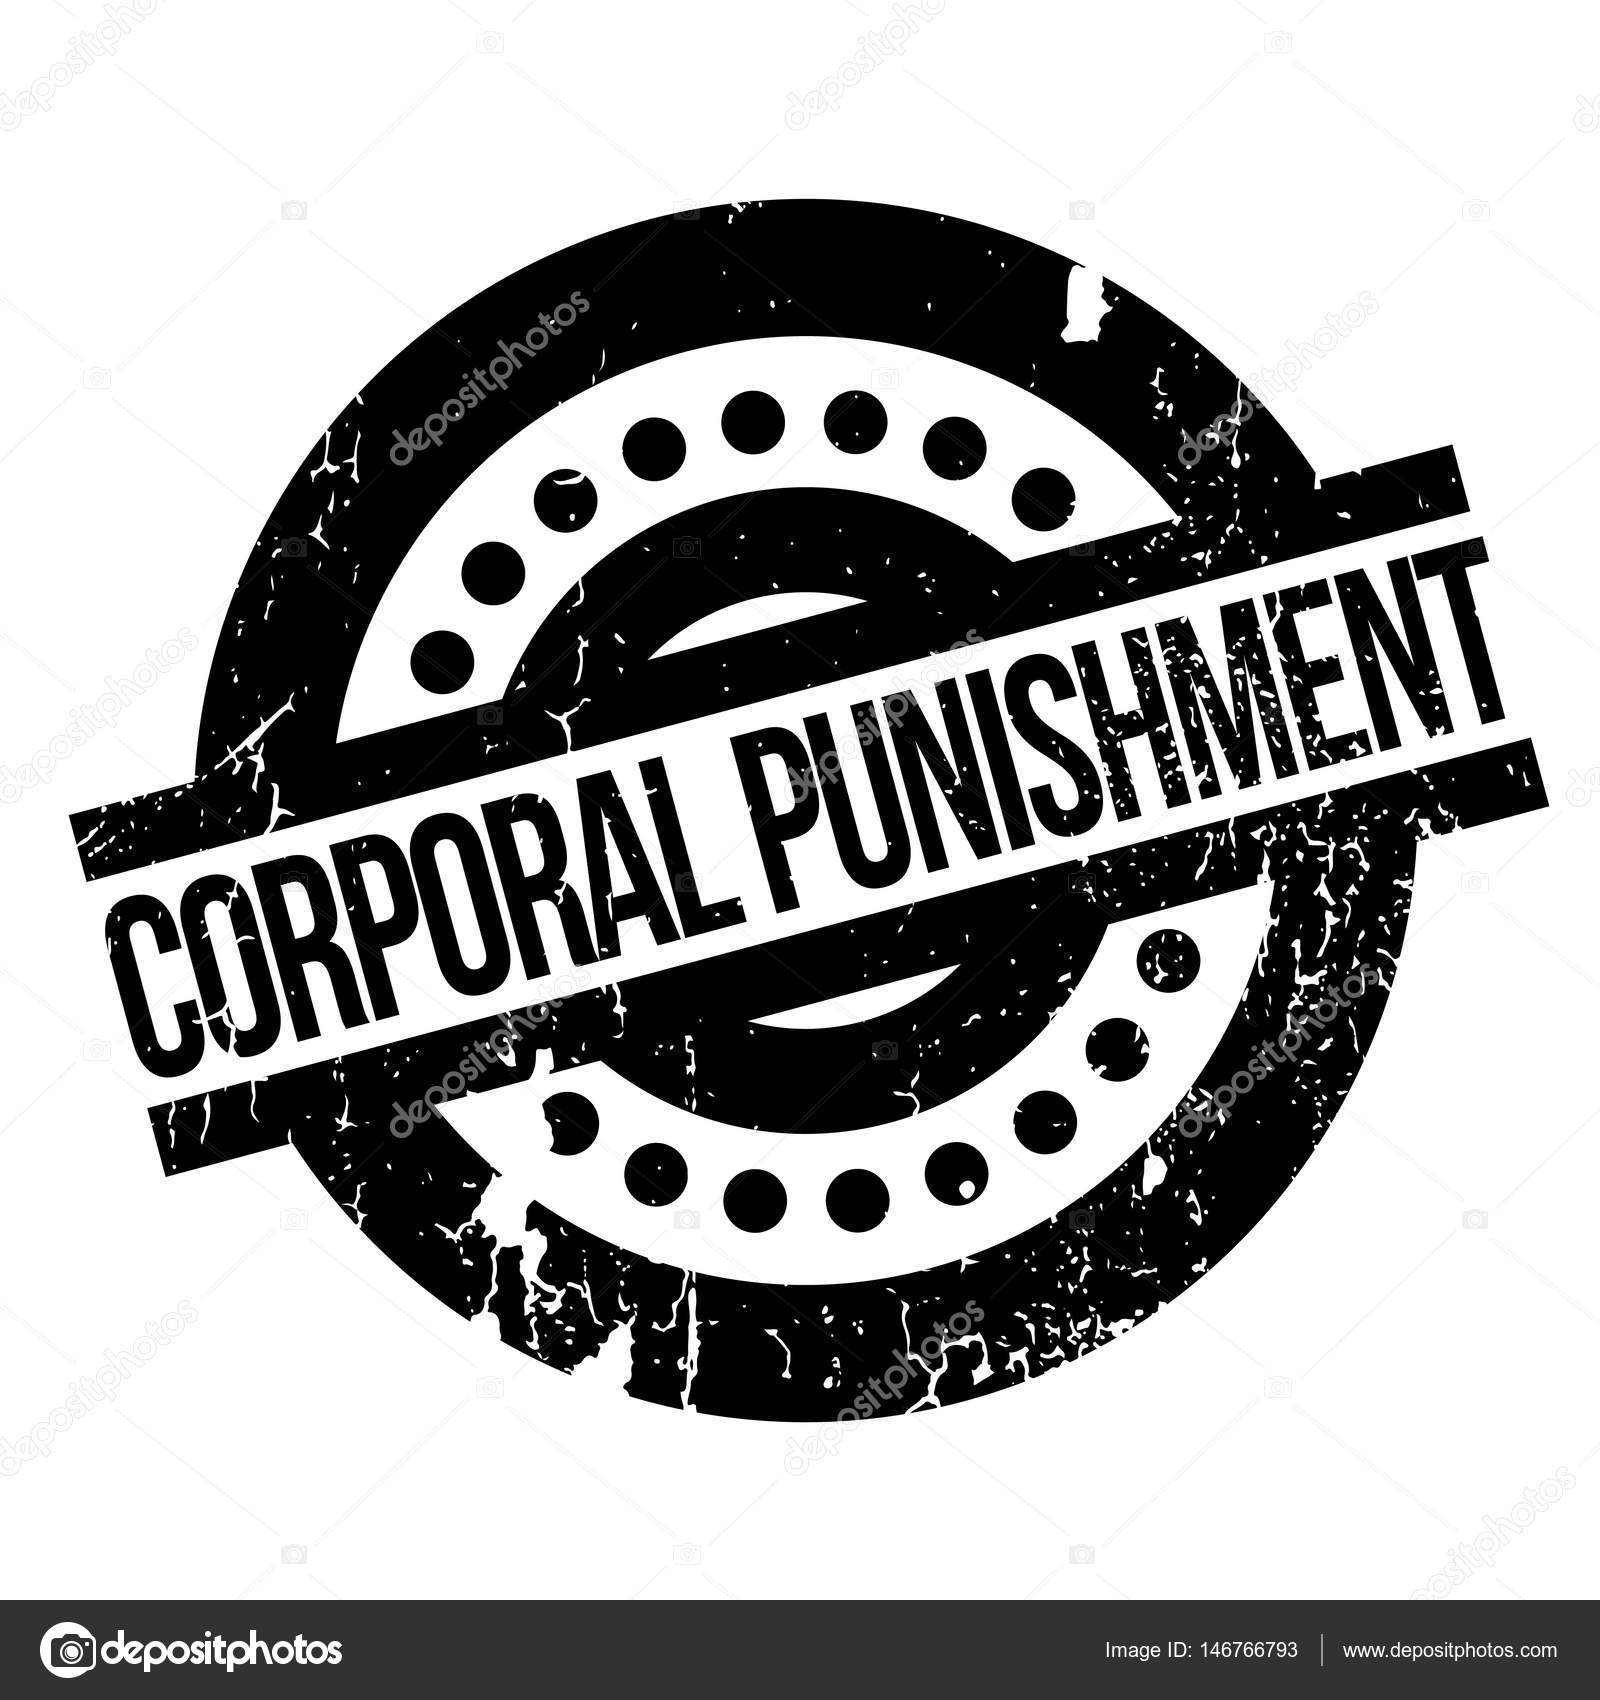 Grunge corporal punishment business! Certainly